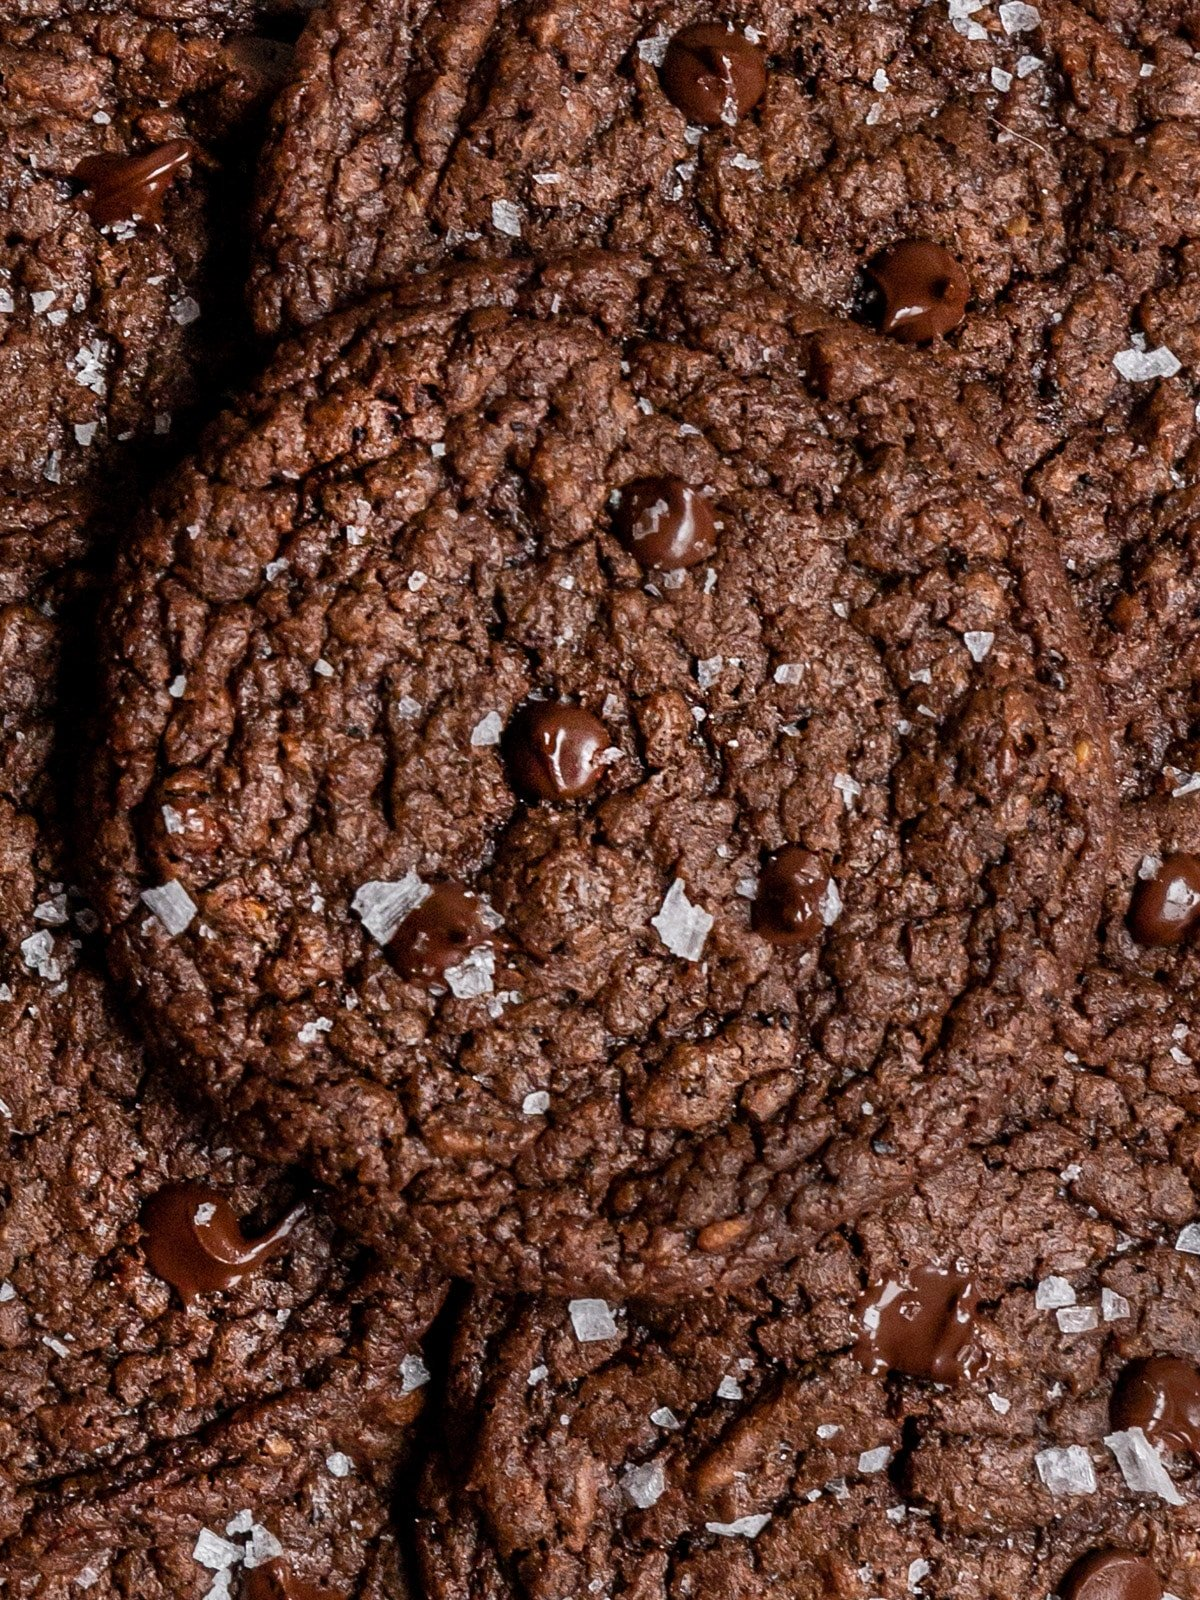 close up shot of a crinkly chocolate cookie with sea salt on top